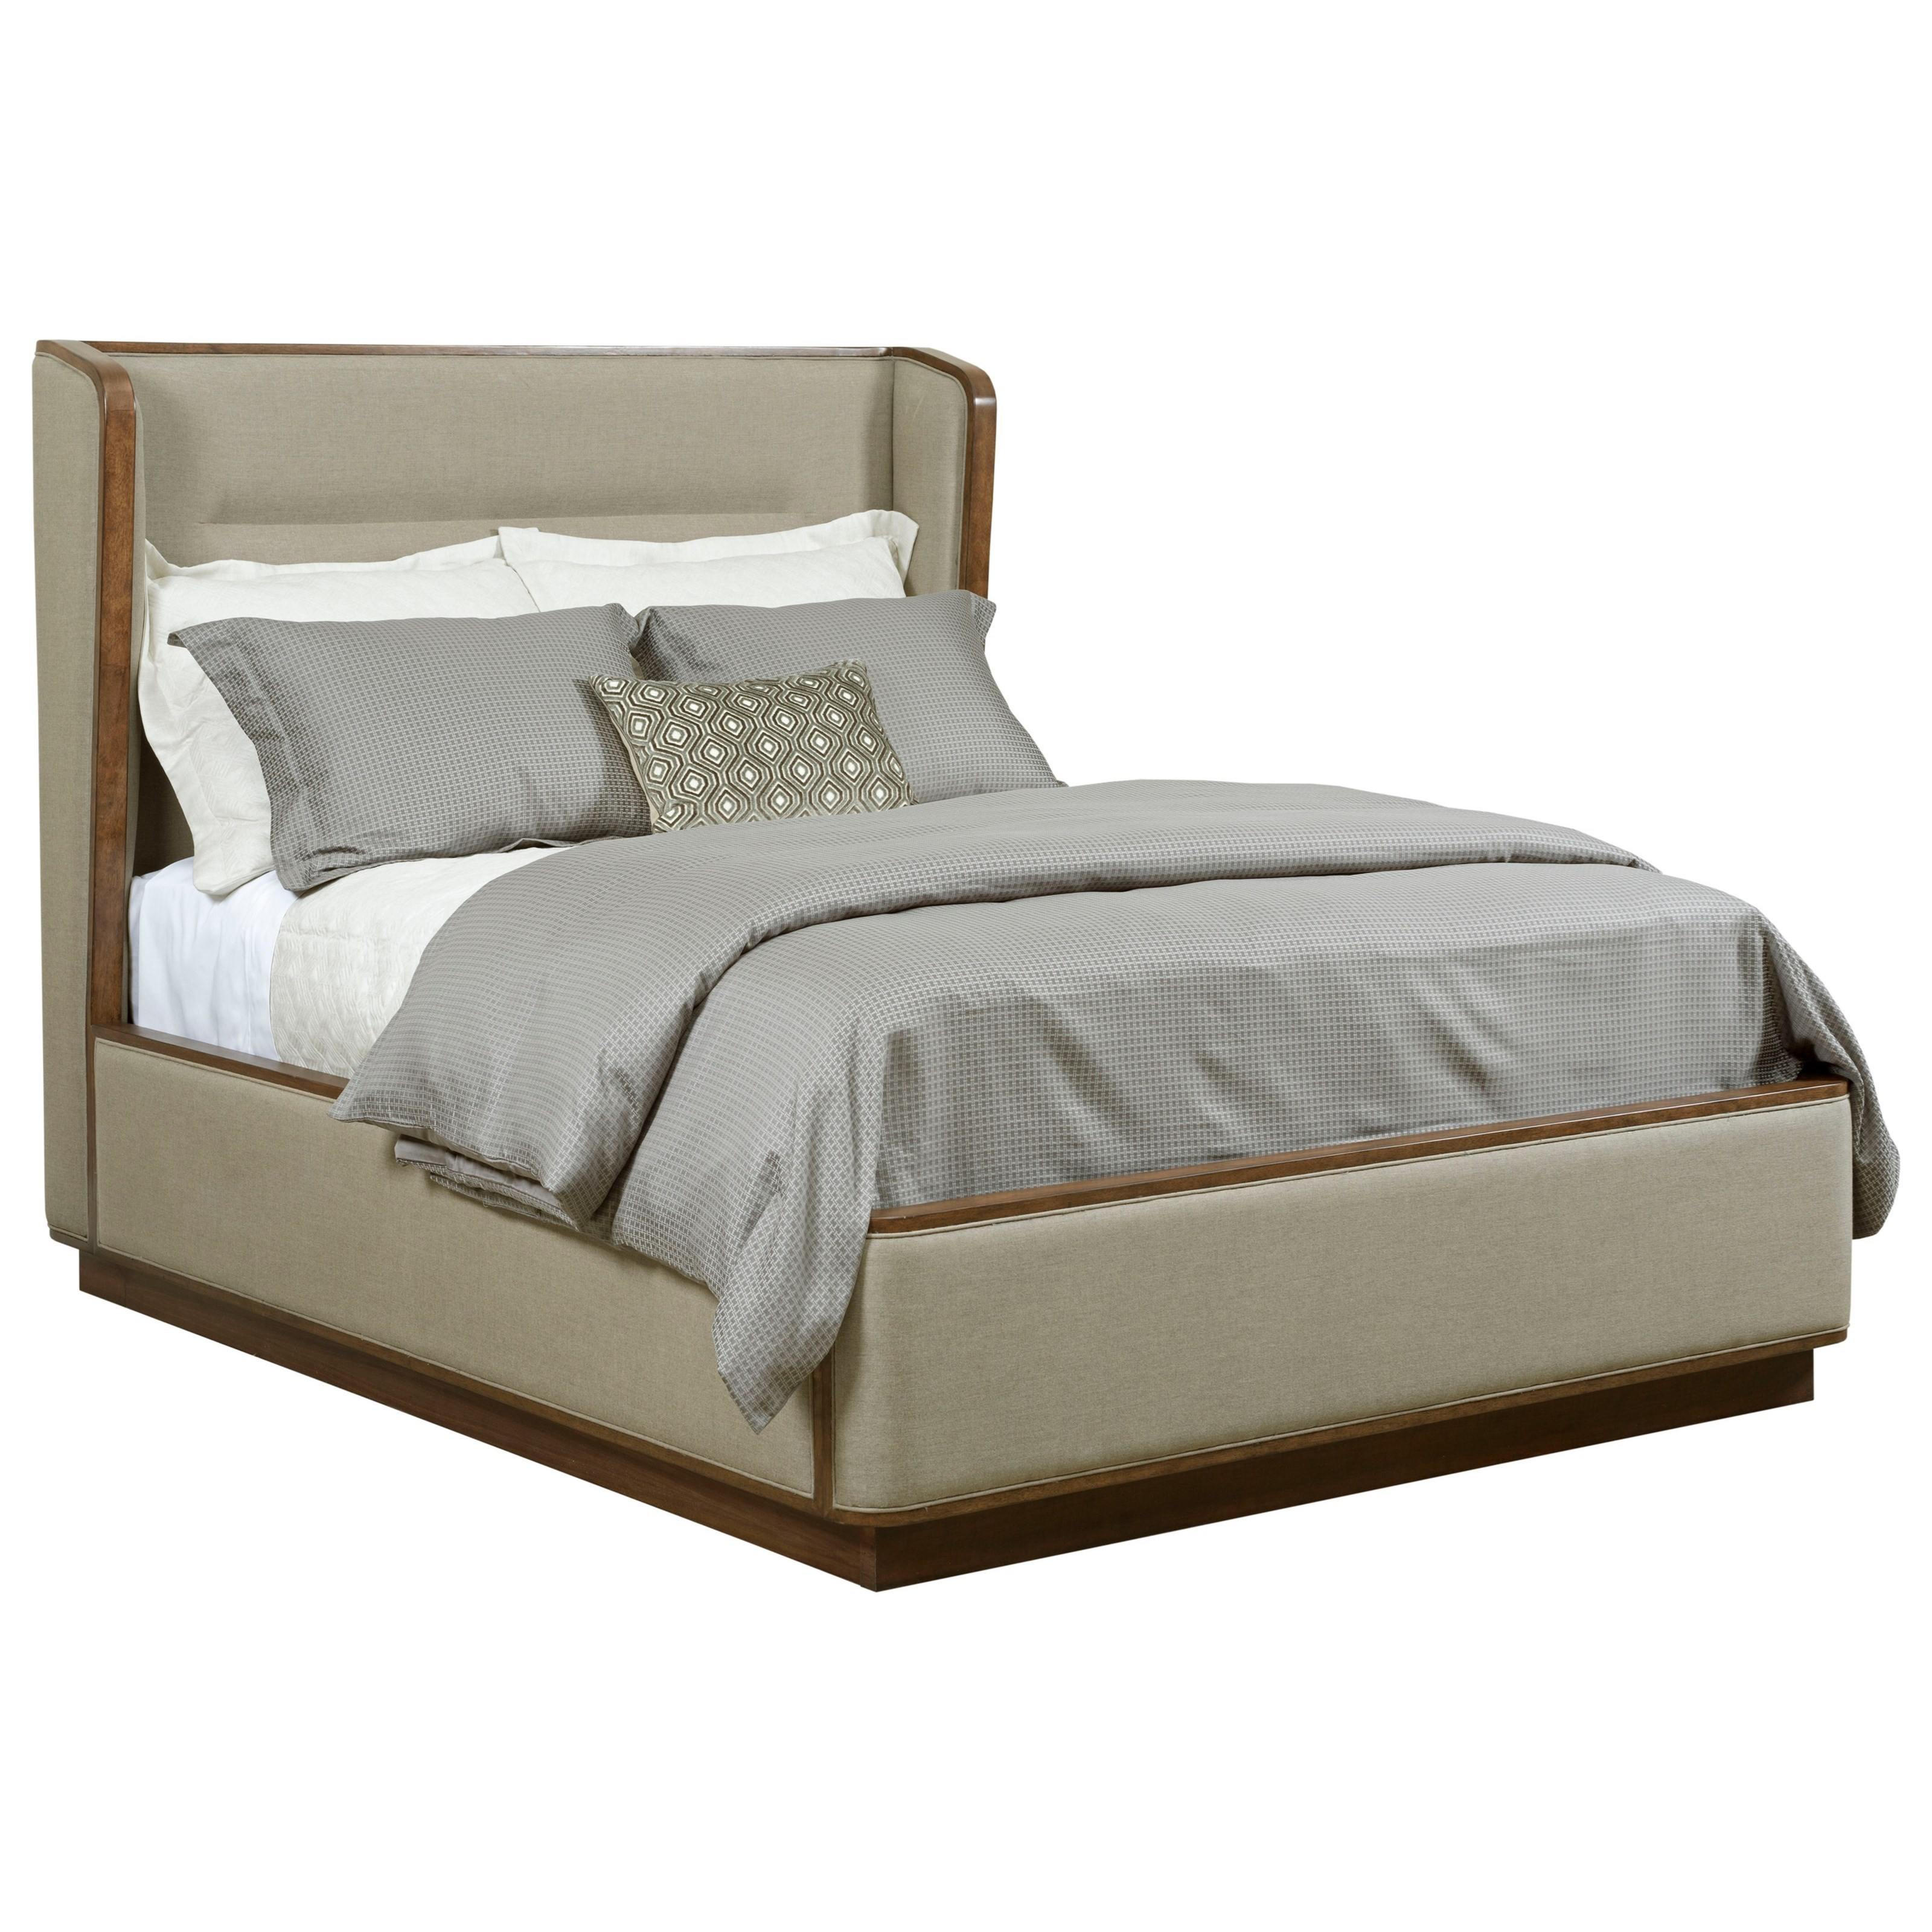 American Drew Modern SynergyQueen Astro Upholstered Bed ...